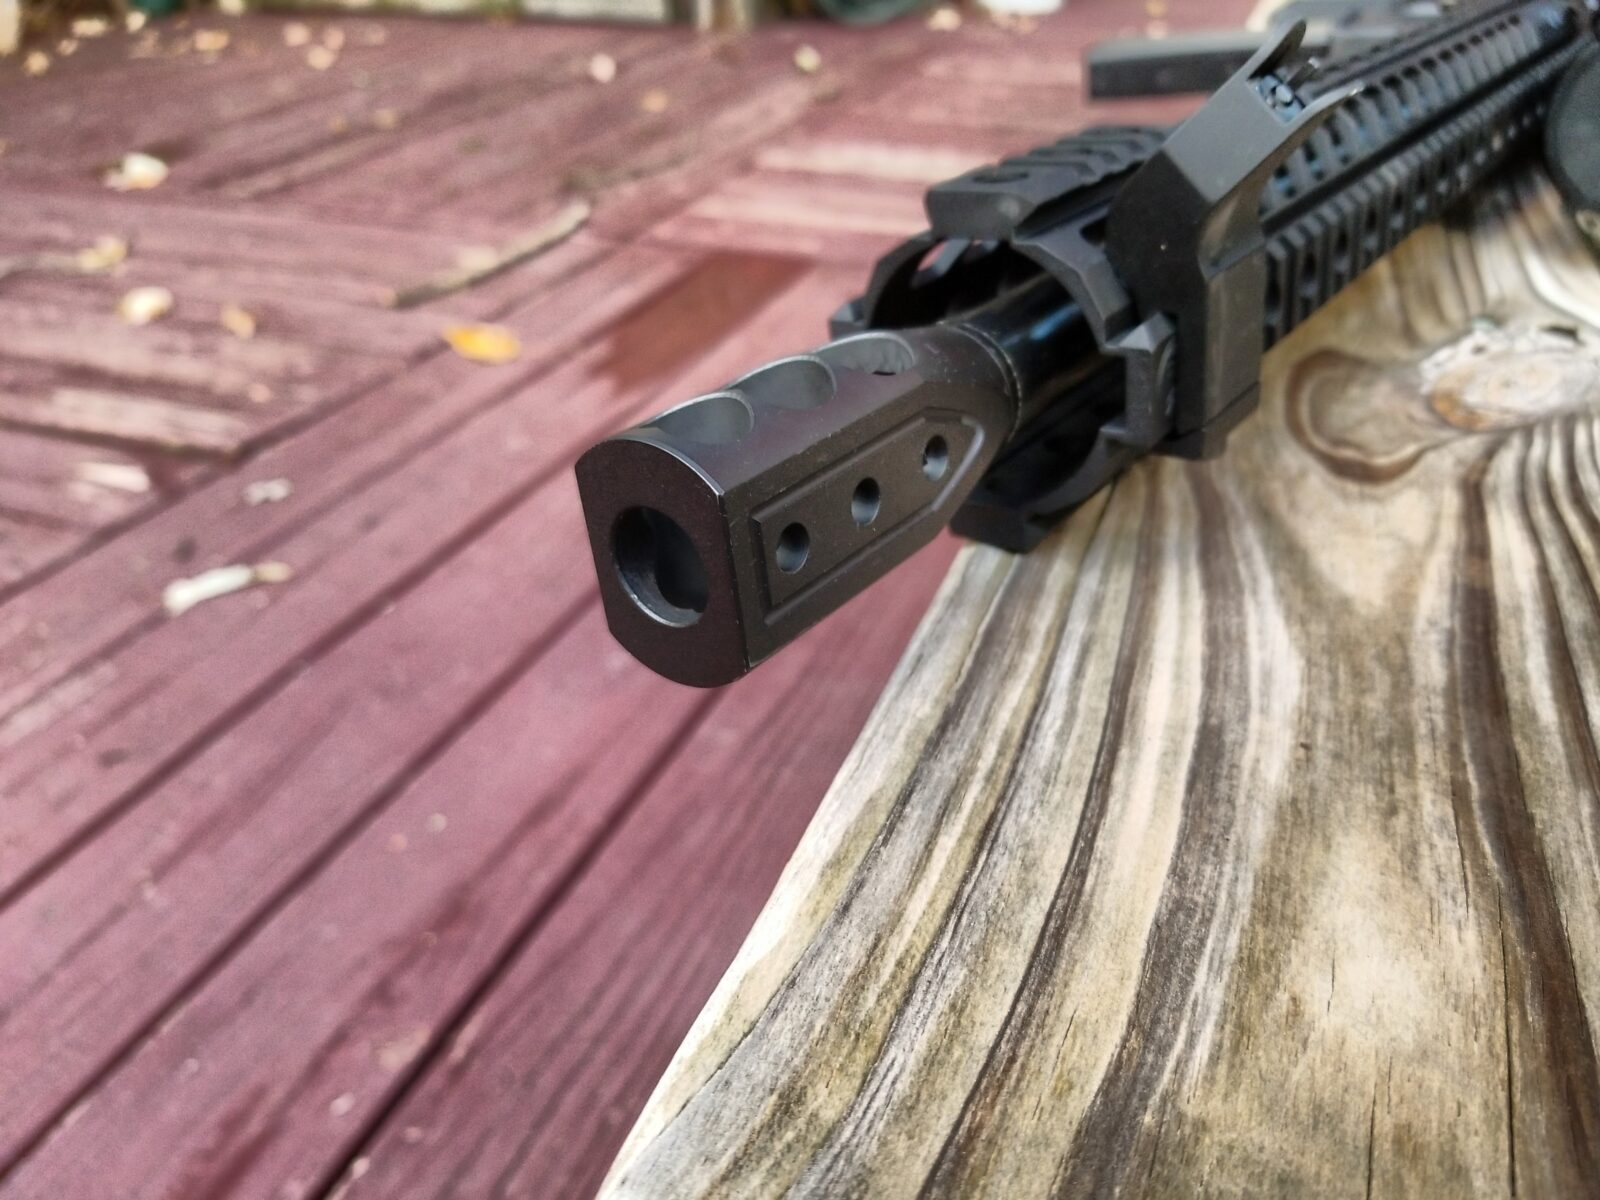 Taming The Wulf My Adventure With A 50 Beowulf Ar Rifle Ronin S Grips